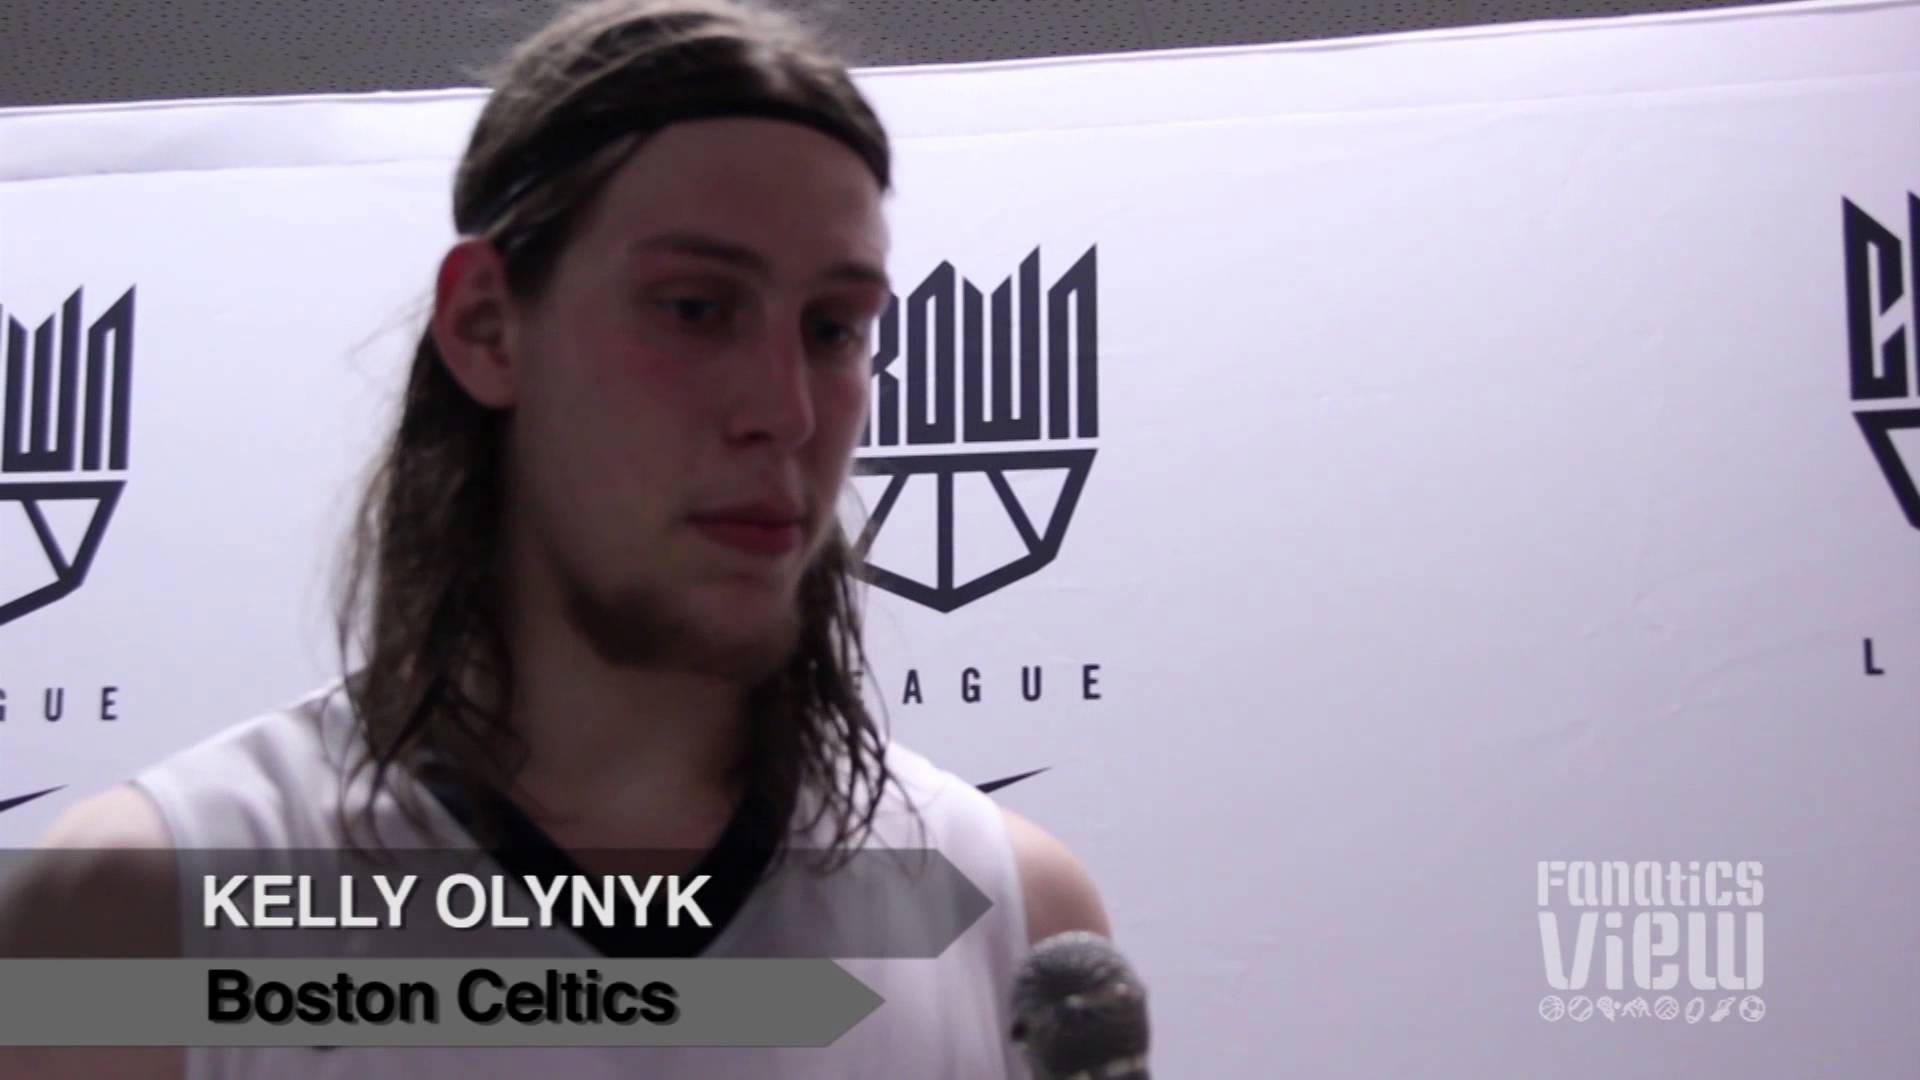 Kelly Olynyk exclusive feature with The Fanatics View